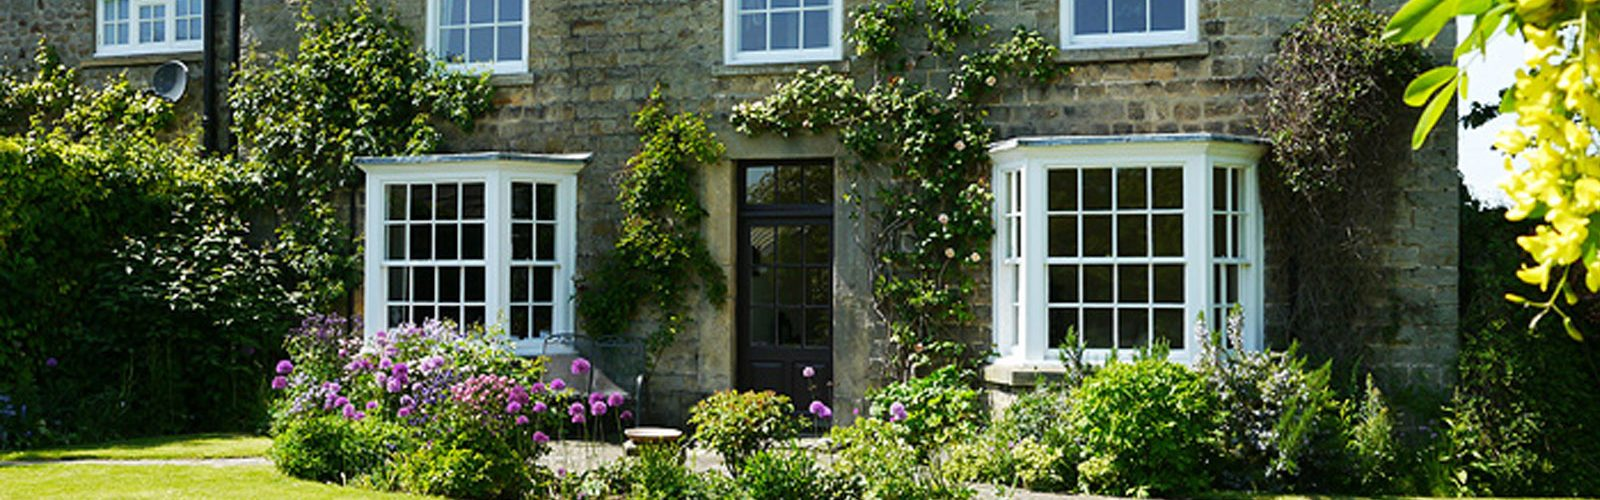 Heritage Sash Windows Exeter